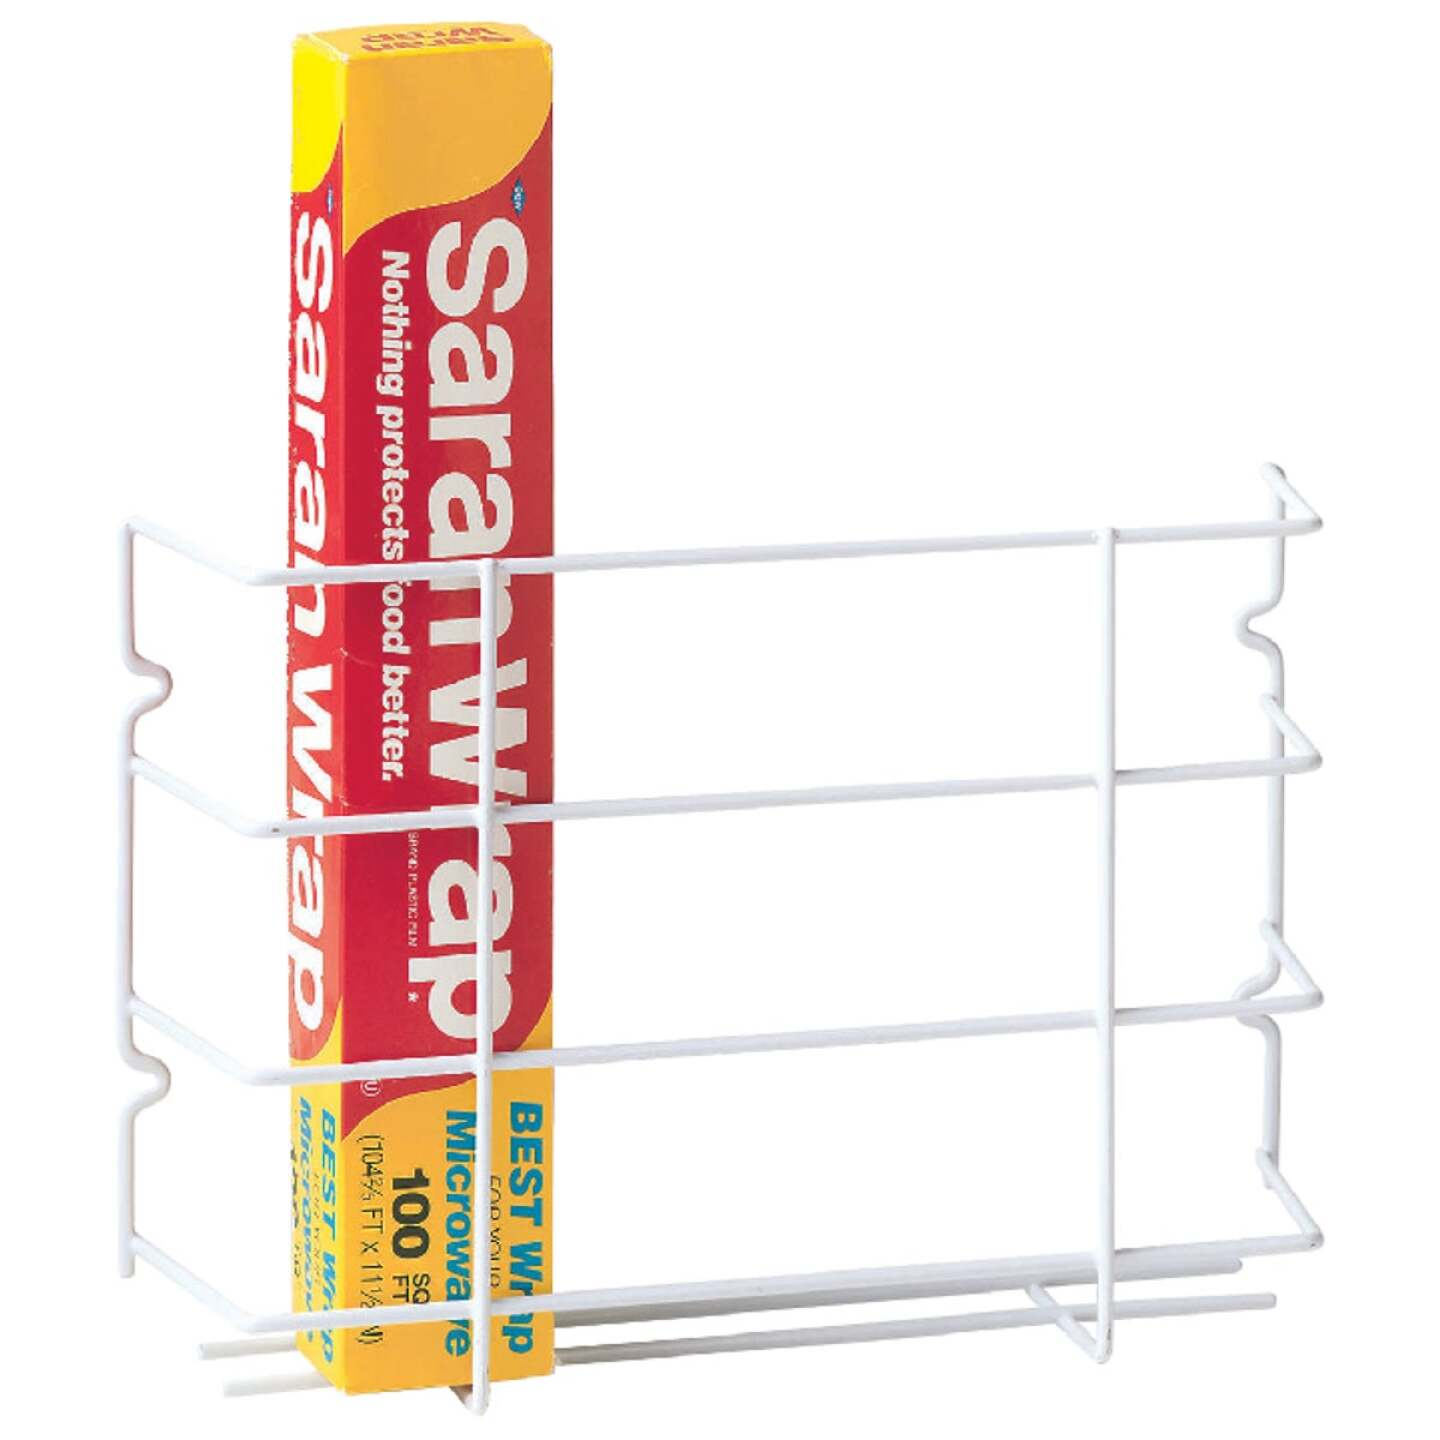 Grayline 12 In. L. x 3-5/8 in. D. x 8 In. H. Kitchen Wrap Rack Image 1